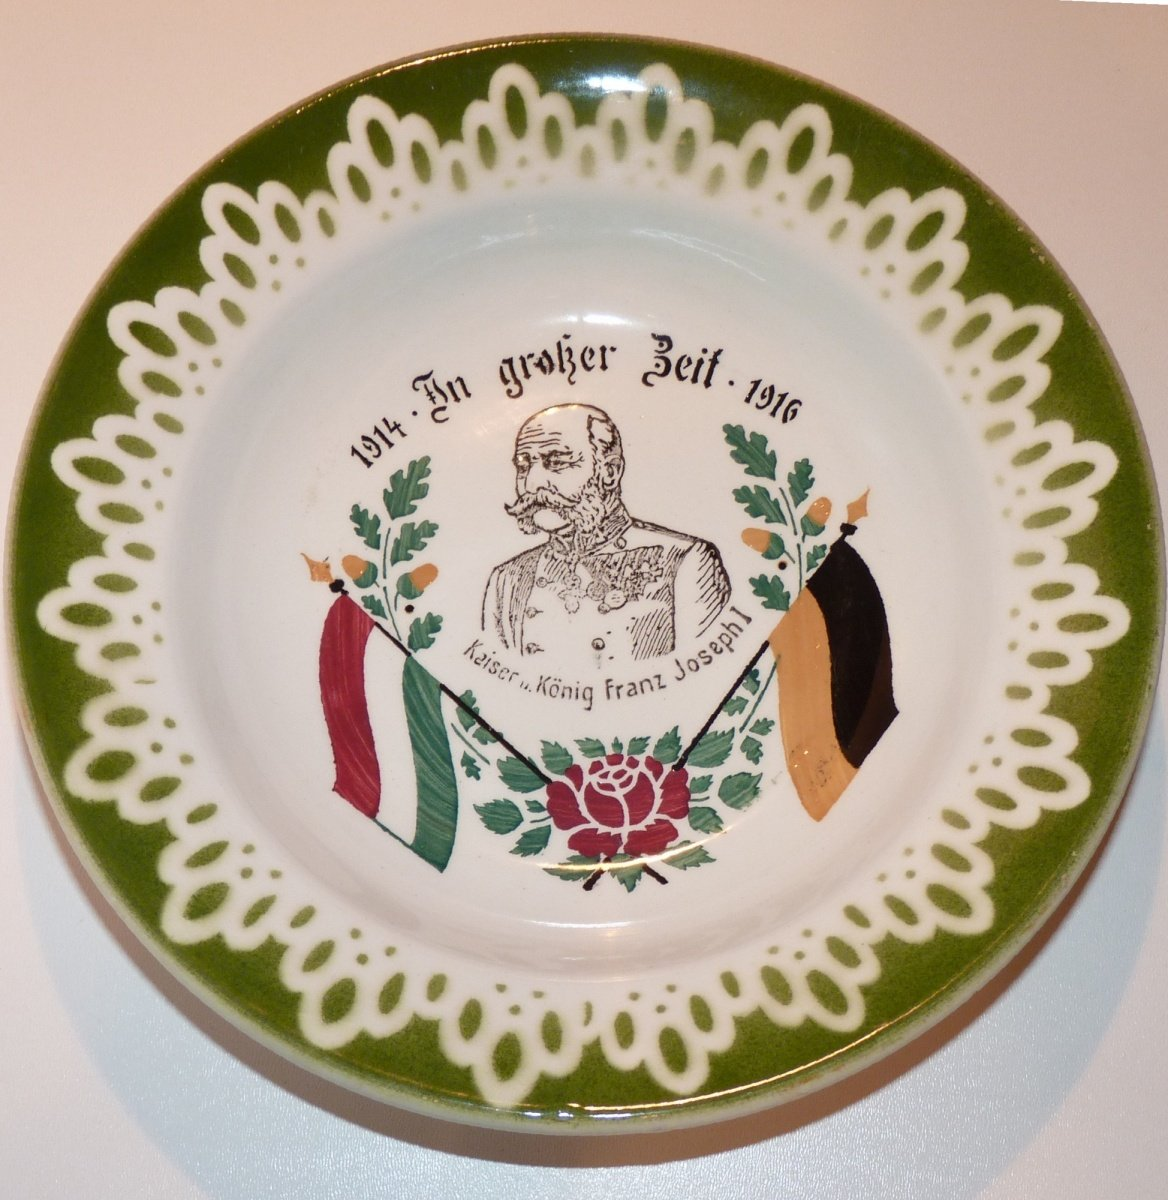 Plate in honor of Franz Joseph I. (1914 - 1916)